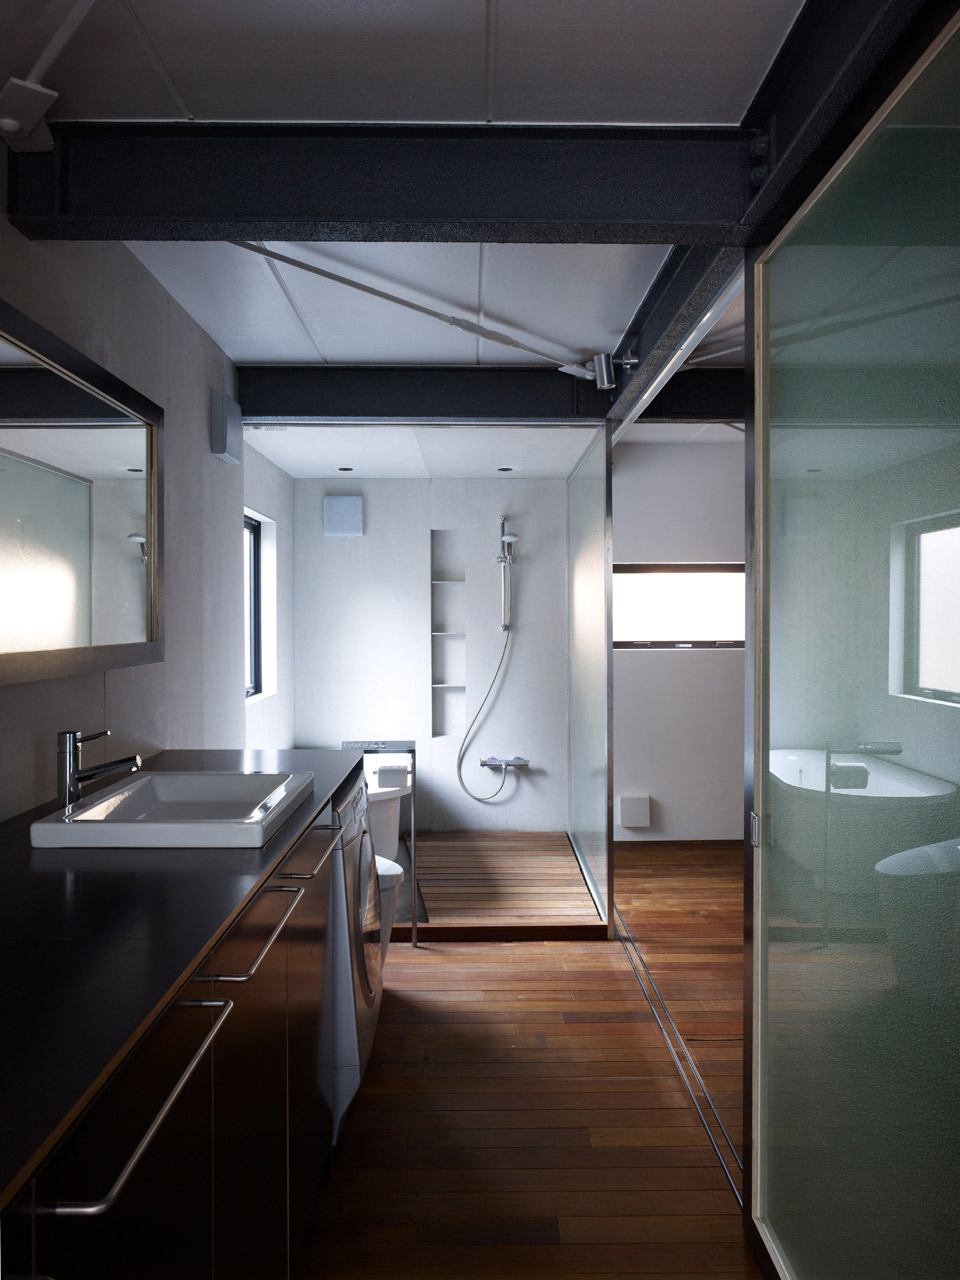 Bathroom, Shower, Wood Floor, Compact Modern Home in the Heart of Tokyo